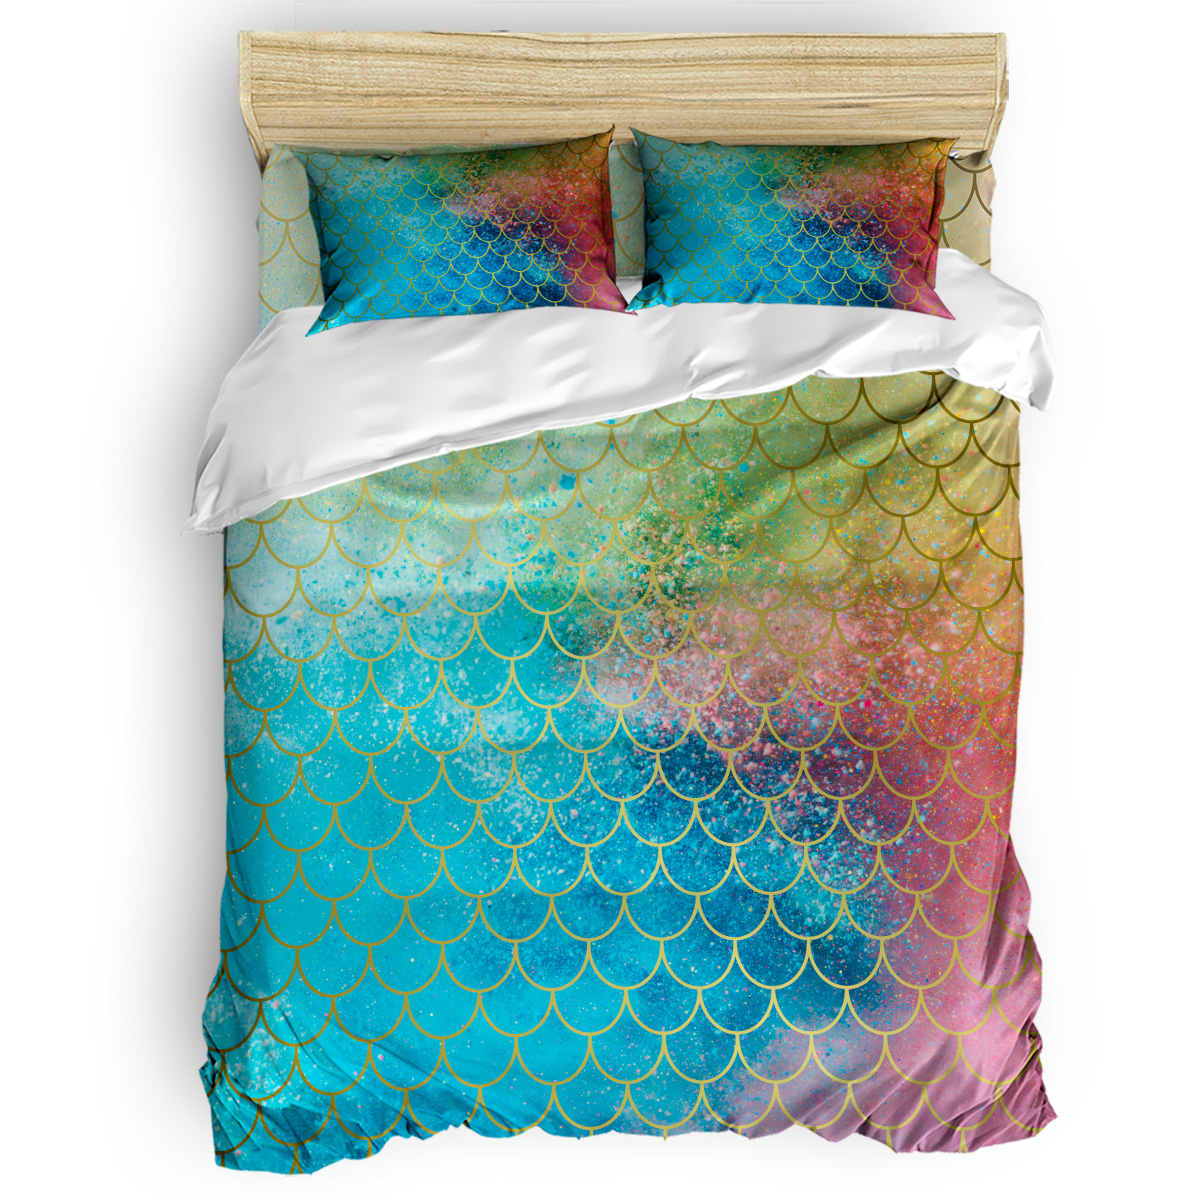 Colorful Mermaid Scales Duvet Cover Set Vintage Floral Art Design Collection Of 3/4pcs Bedding Set Bed Sheet Pillowcases Cover